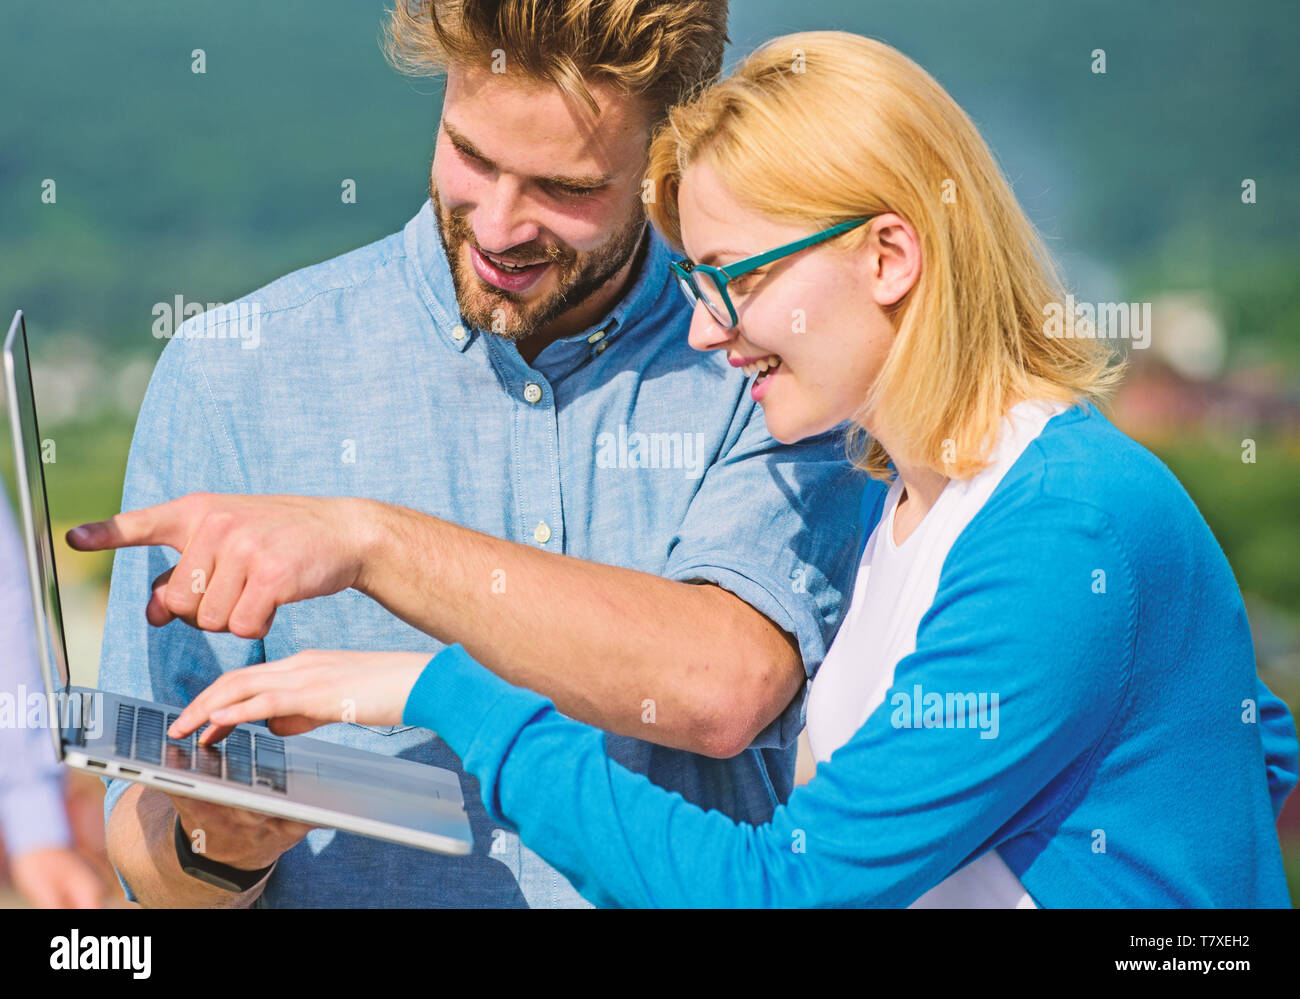 Couple working laptop outdoor sunny day, nature background. Man and girl interested information screen notebook. Mobile internet concept. Internet gives possibility to work from everywhere in world. - Stock Image